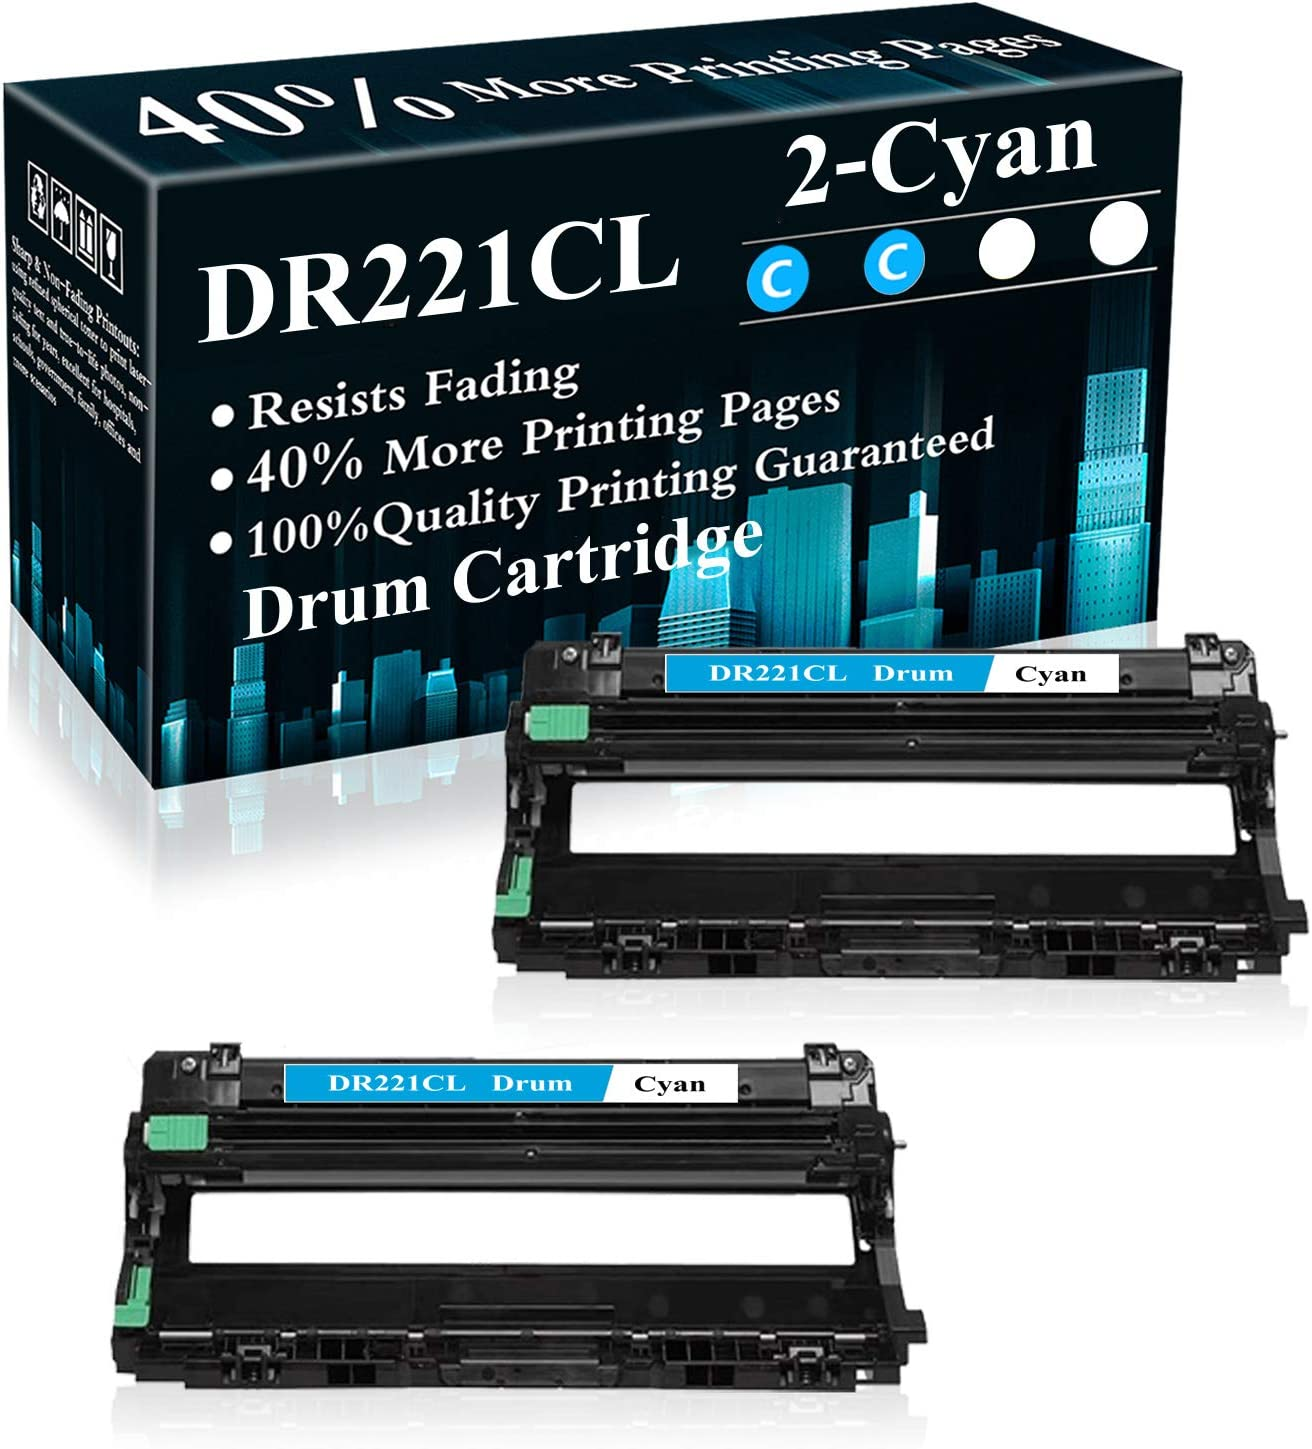 2 Cyan DR221CL Drum Unit Replacement for Brother HL-3140CW 3150CDN 3170CDW 3180CDW 9130CW 9140CDN 9330CDW 9340CDW 9015CDW 9020CDN Printer,Sold by TopInk